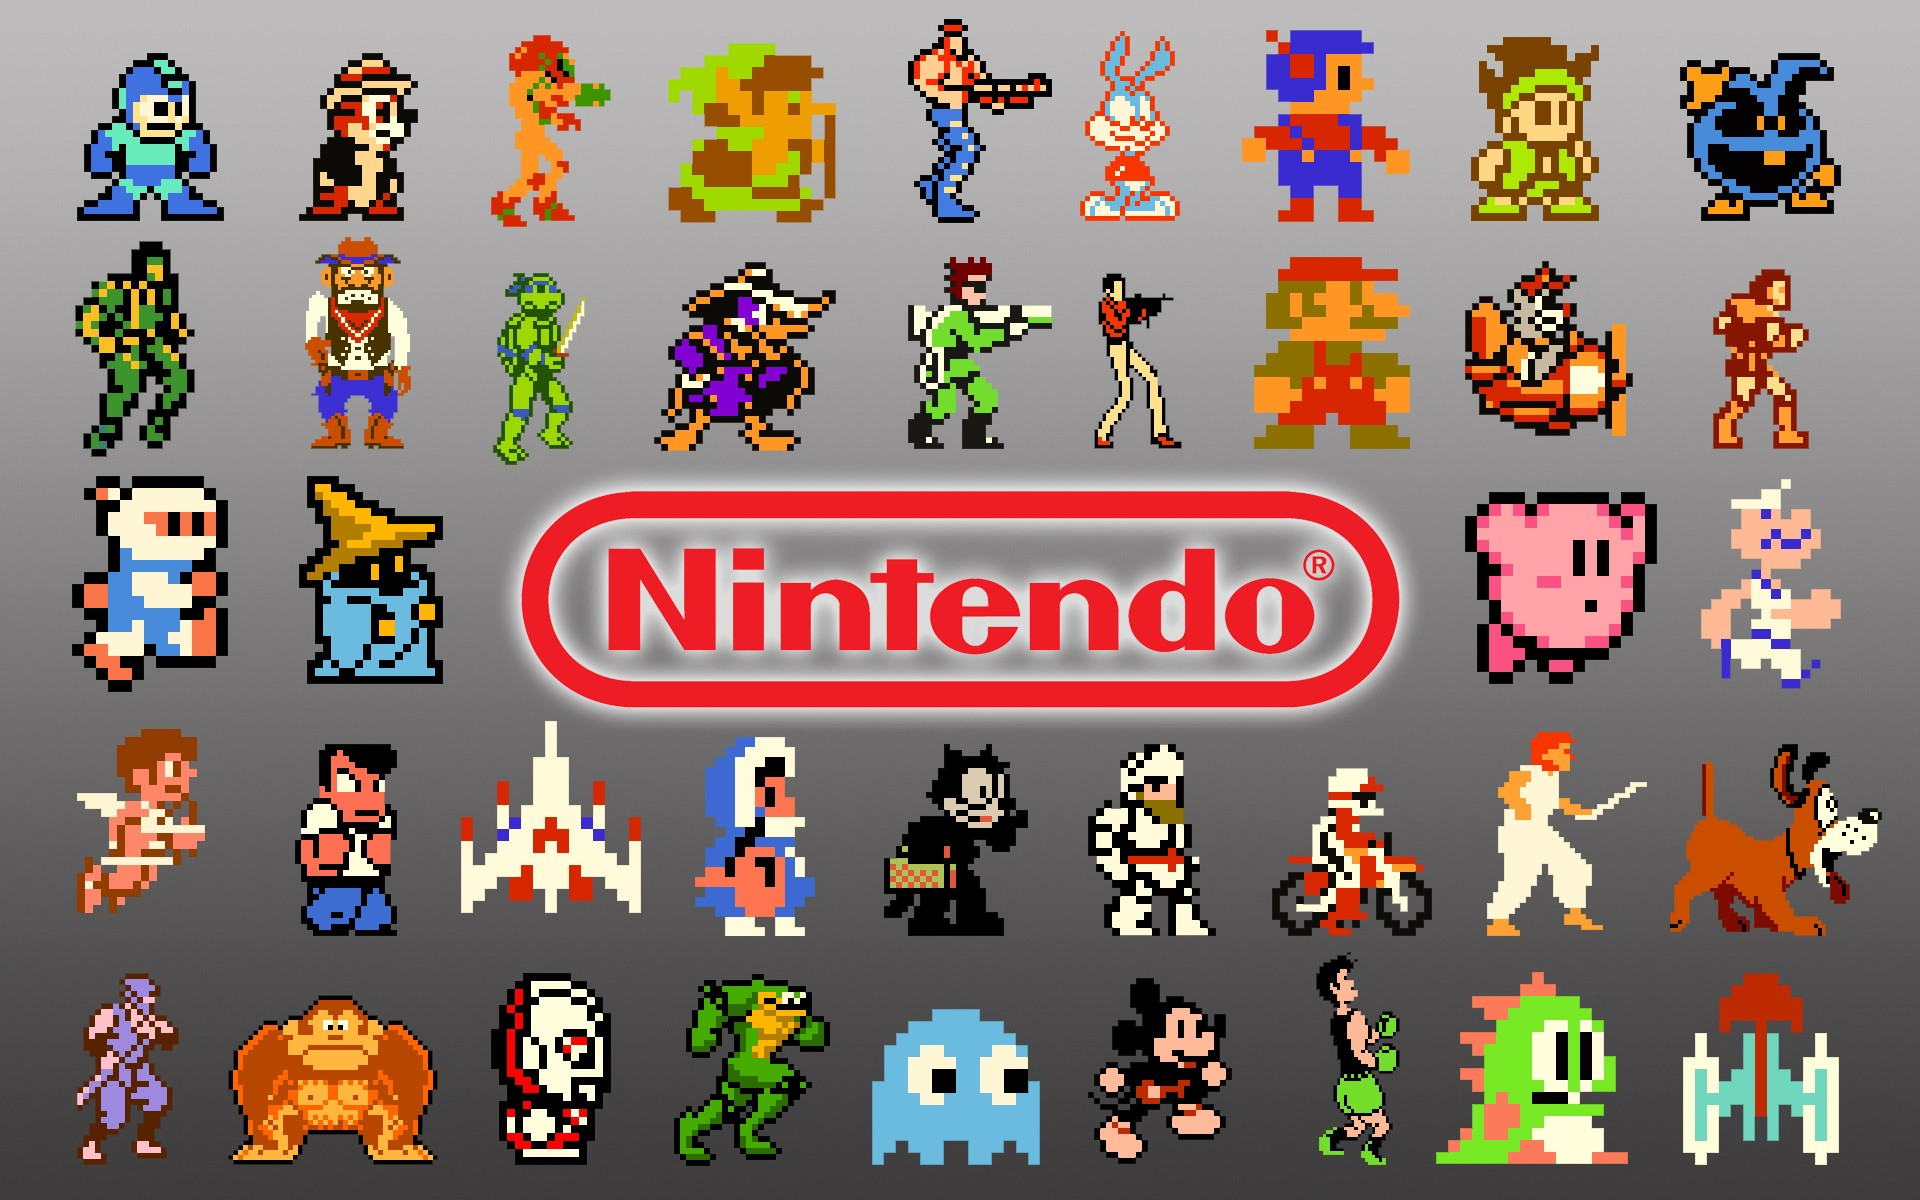 Nintendo Background Download Free Awesome Hd Wallpapers For